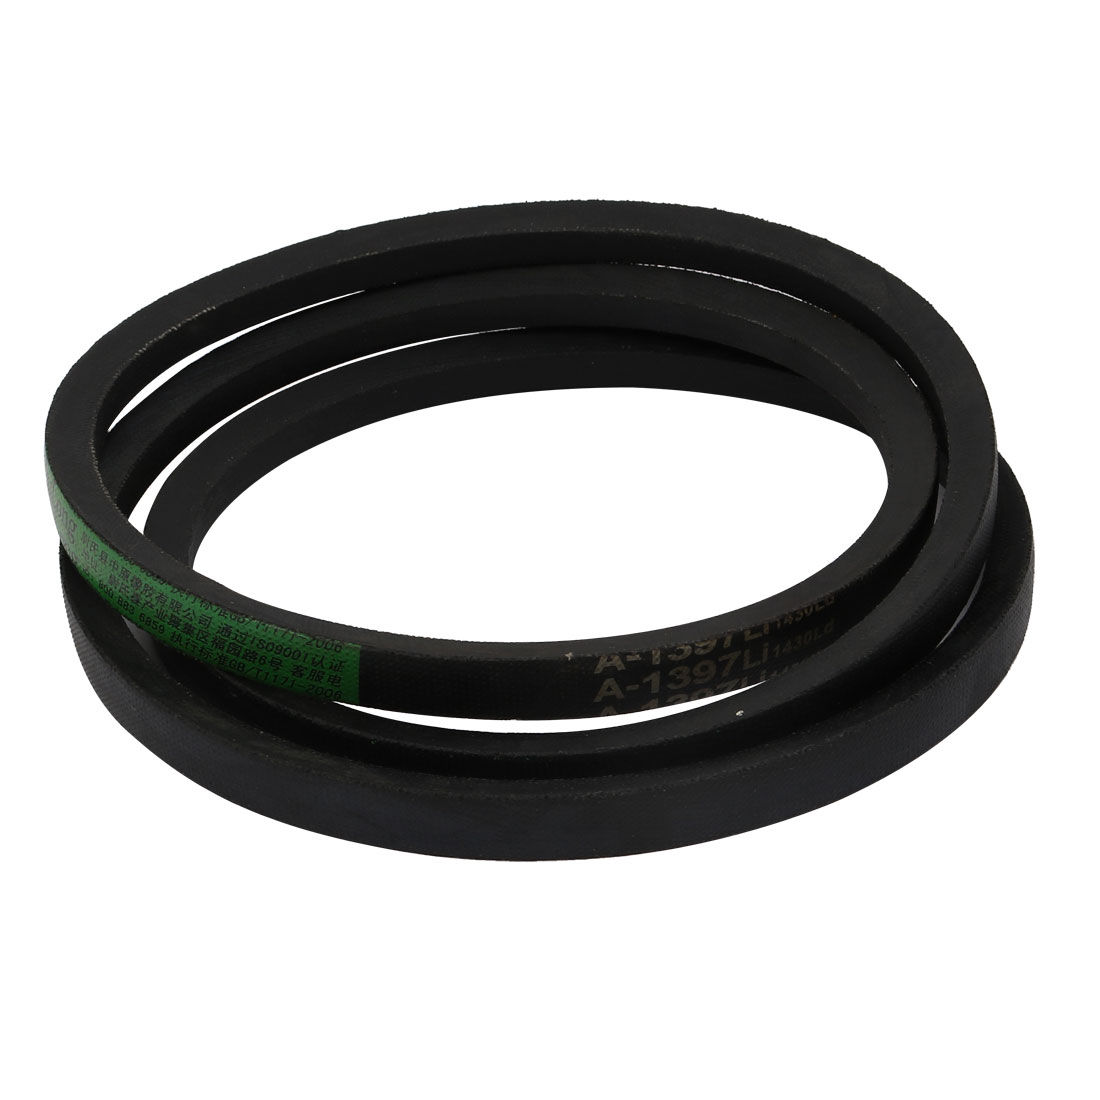 A1397 13mm Wide 8mm Thickness Rubber High Strength Transmission Drive V-Belt